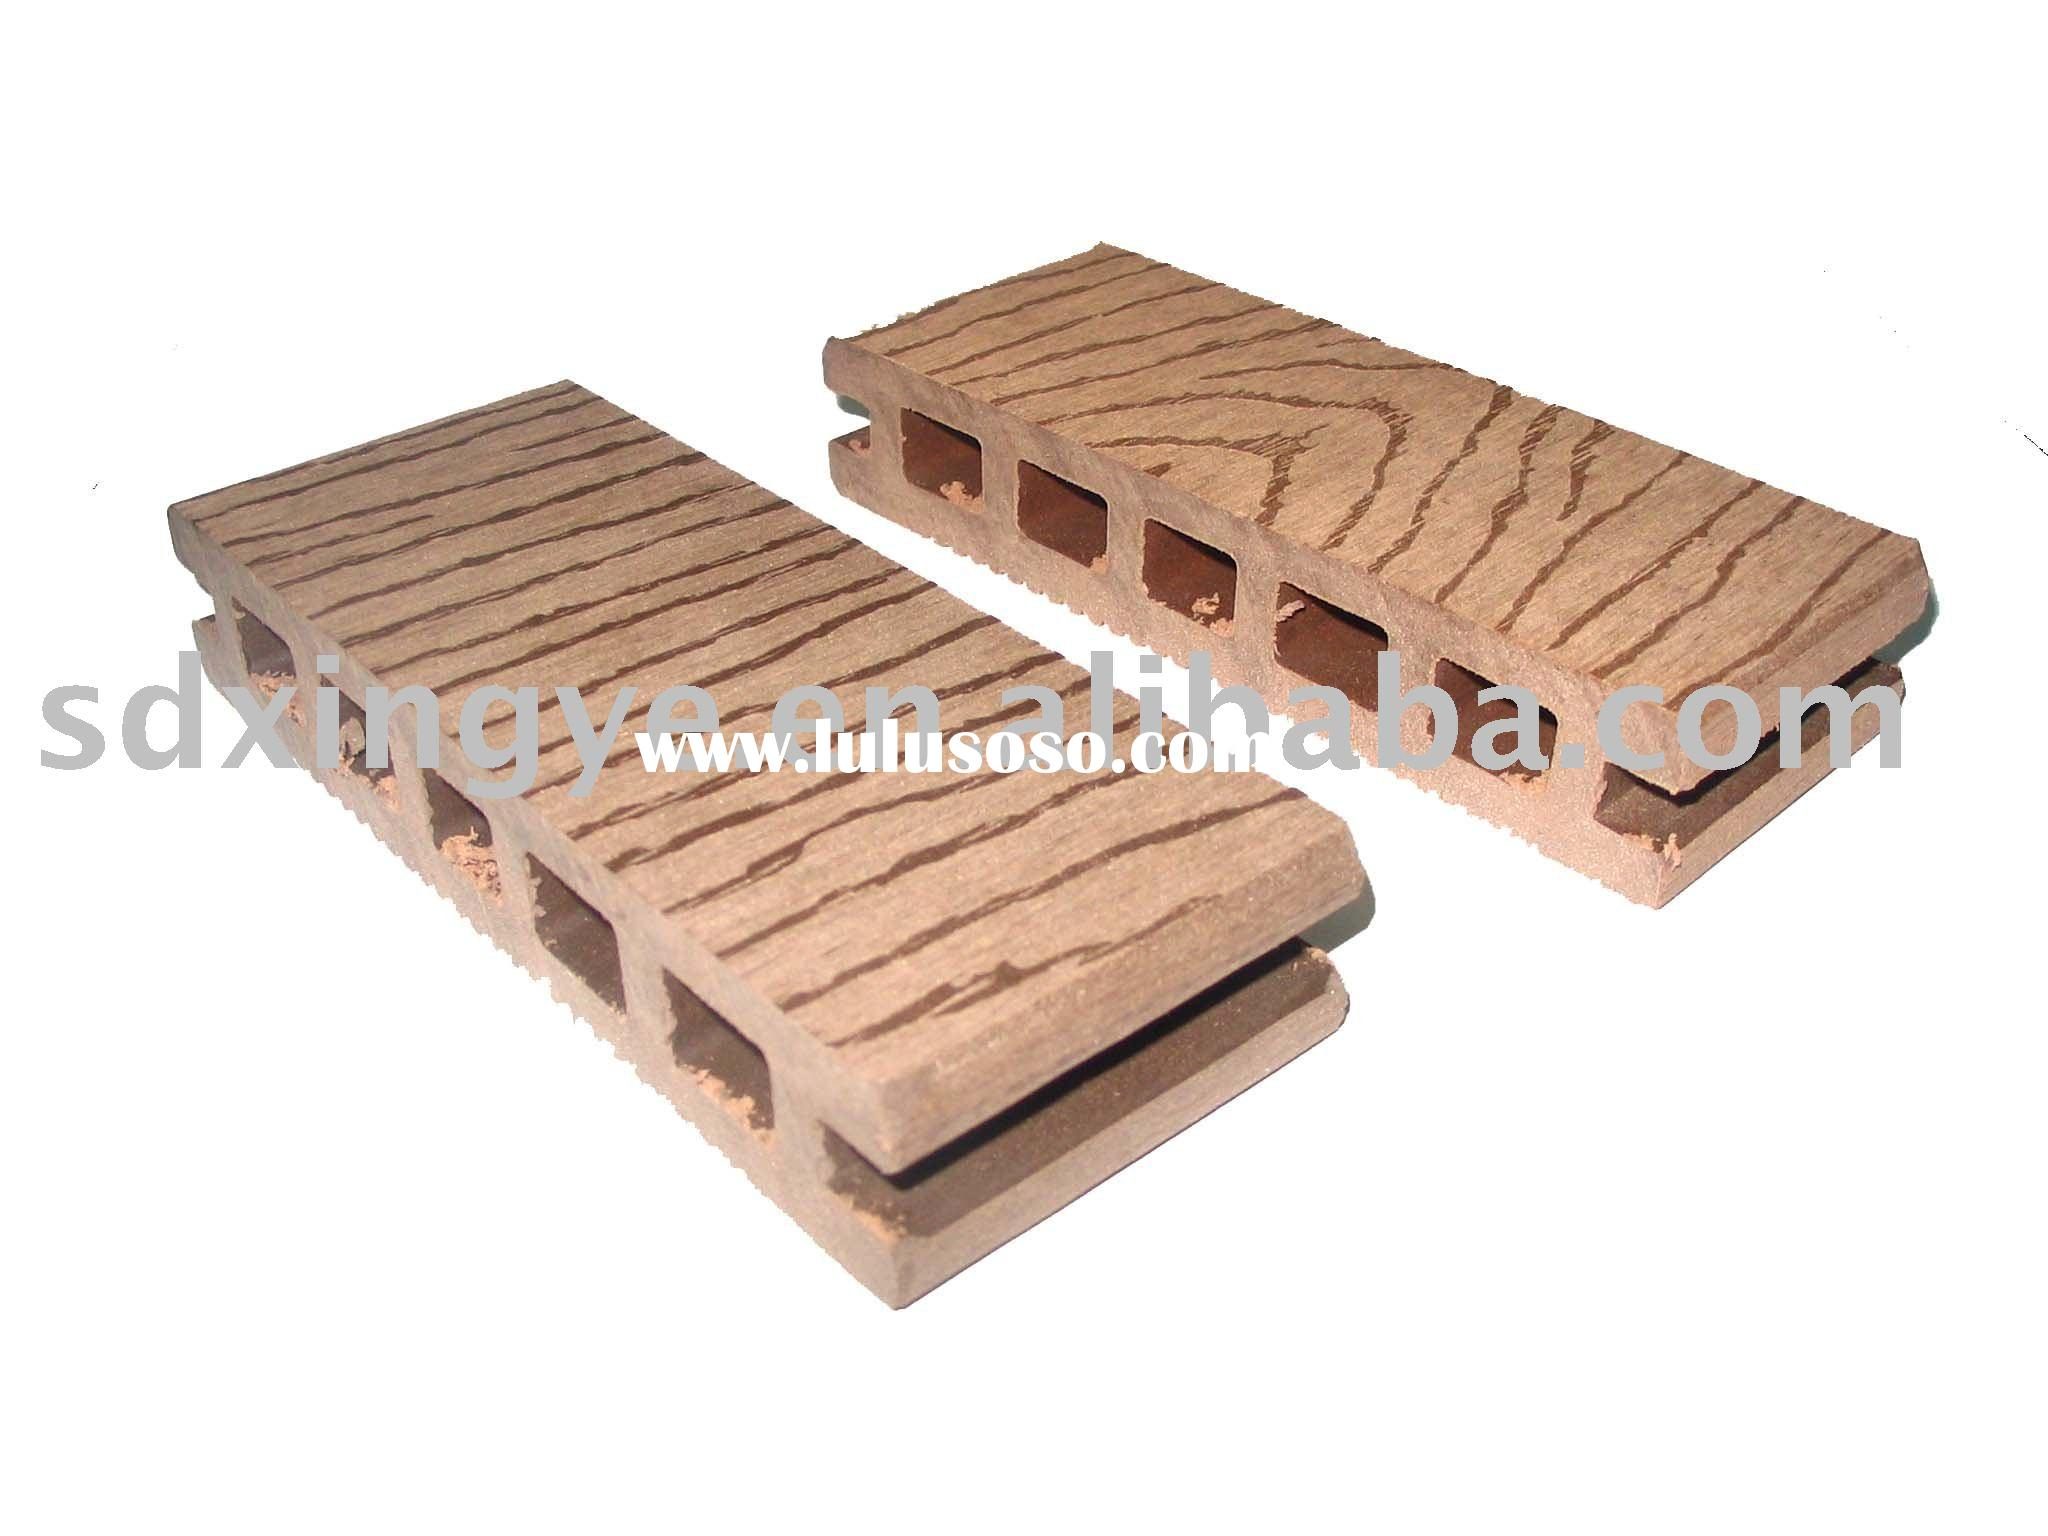 Decking materials non toxic decking material for Outside decking material